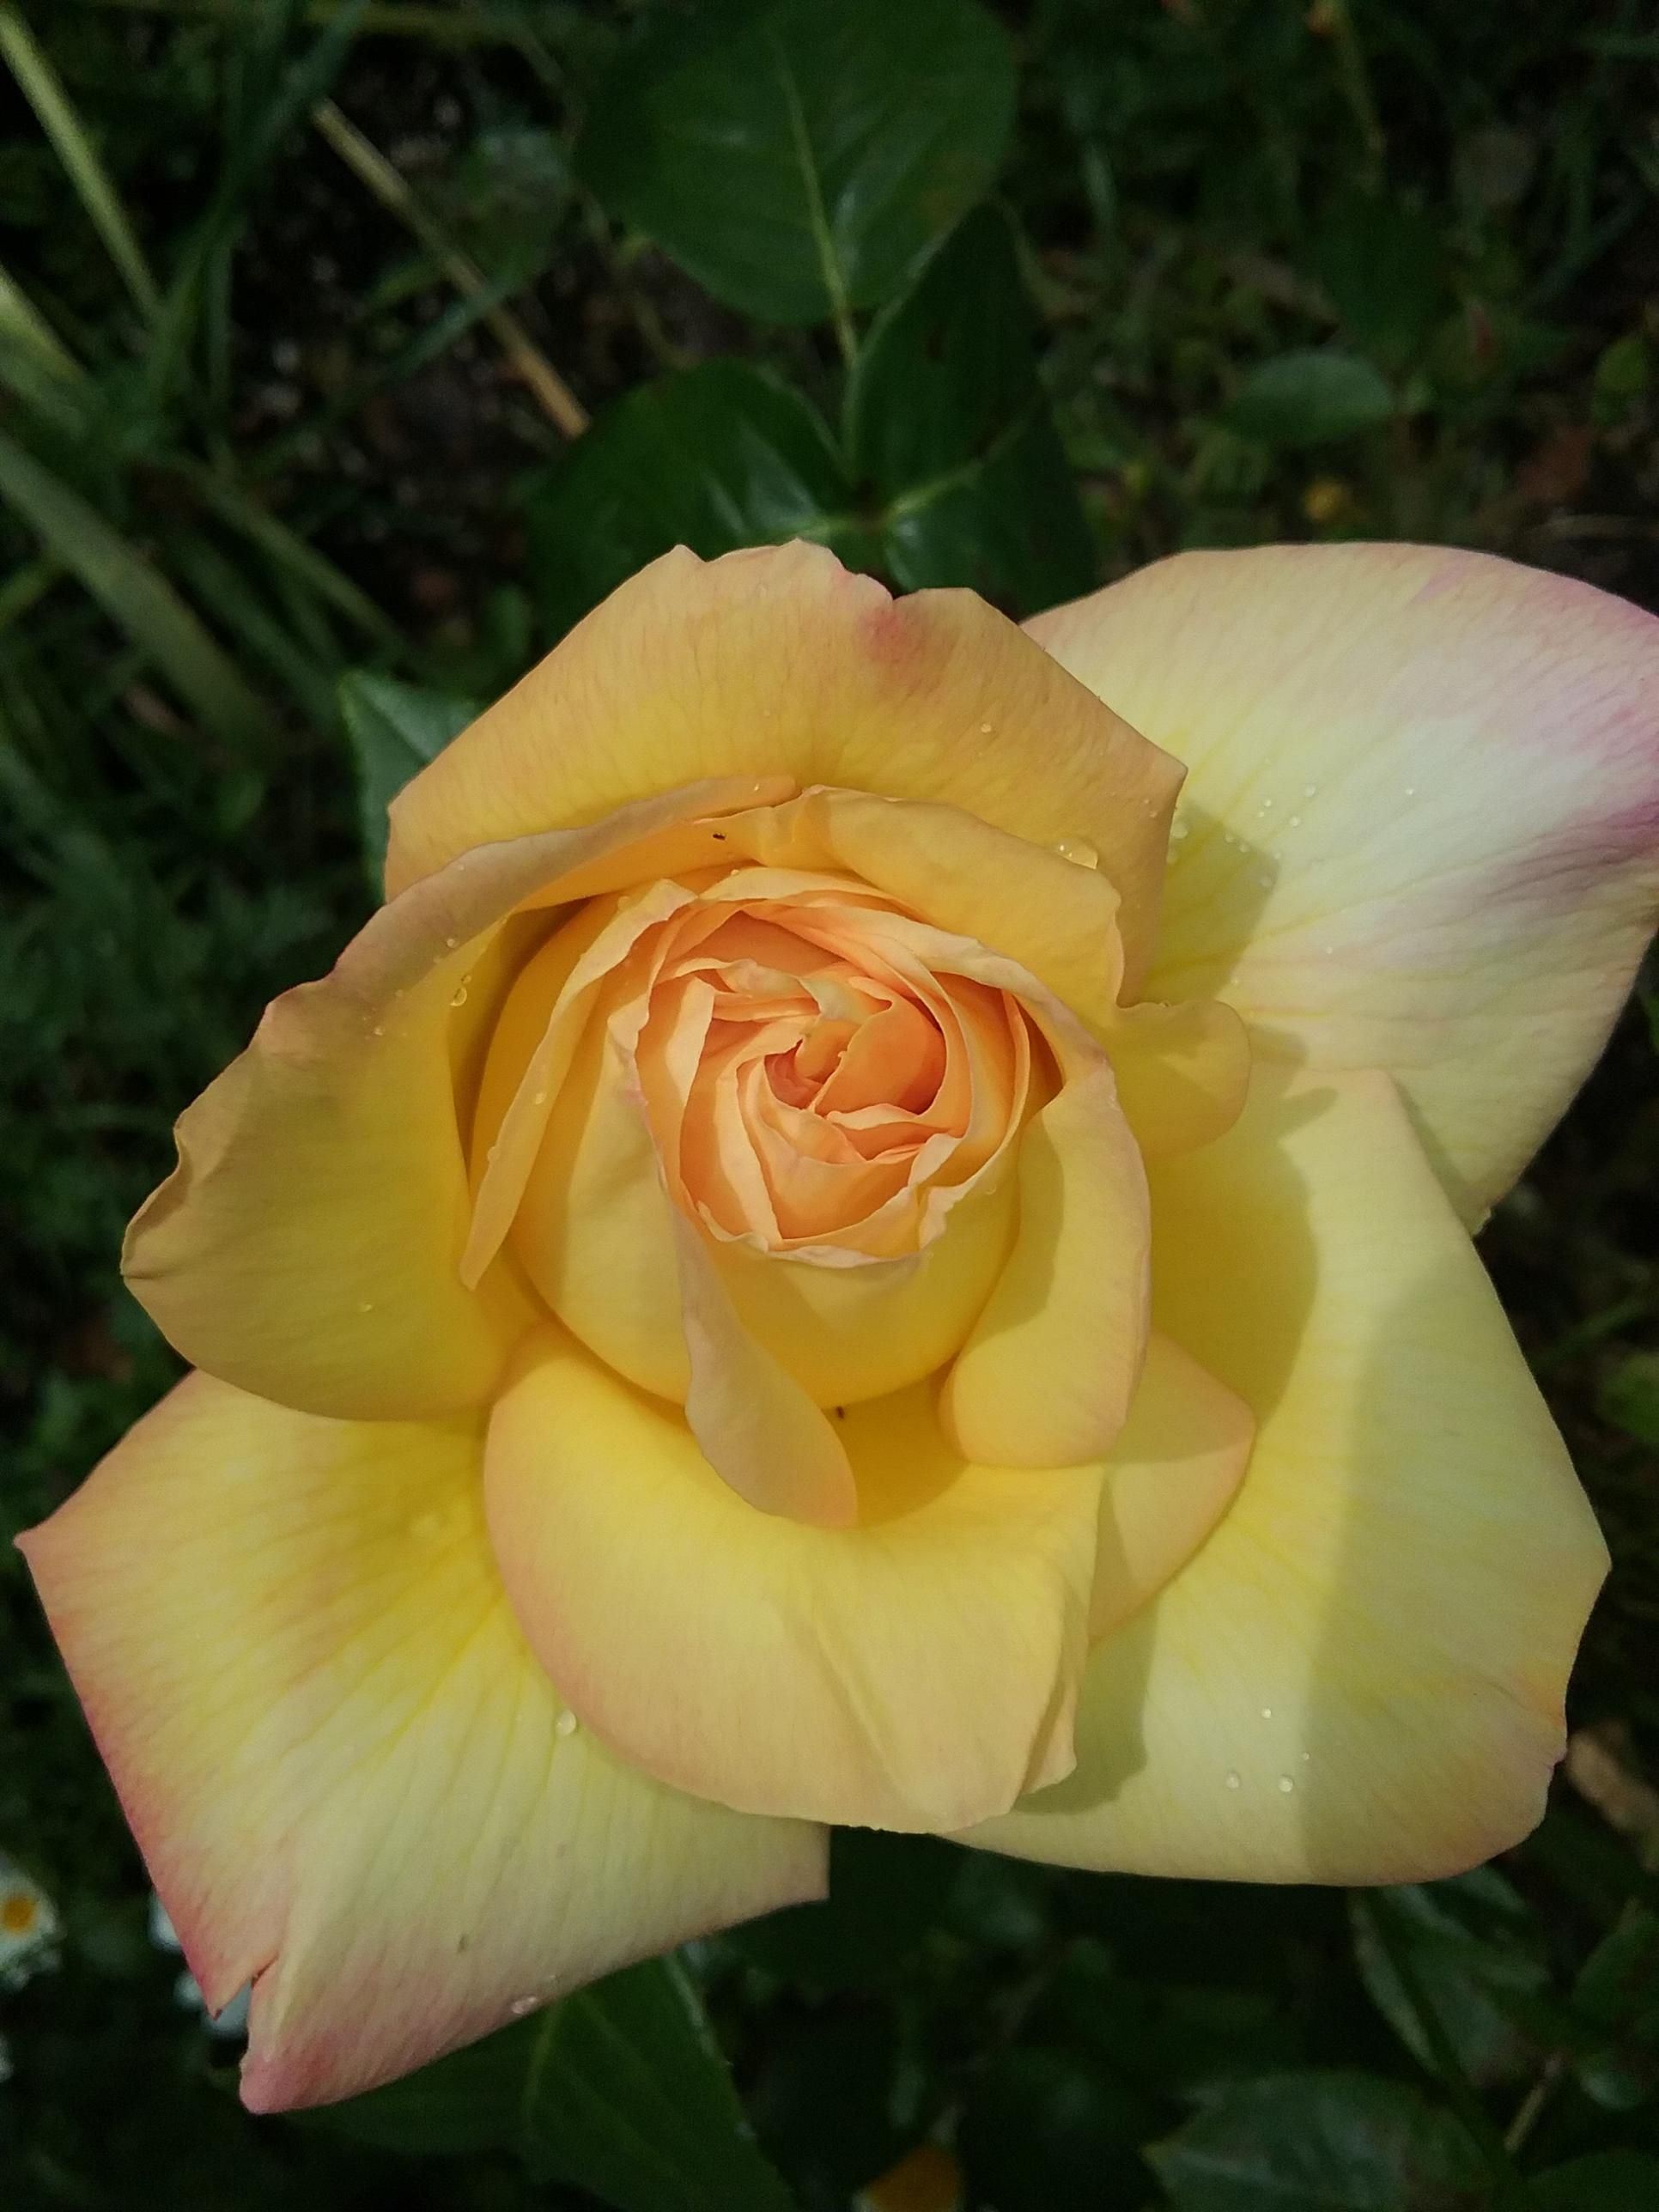 I think the pink edge of this rose makes it so pretty